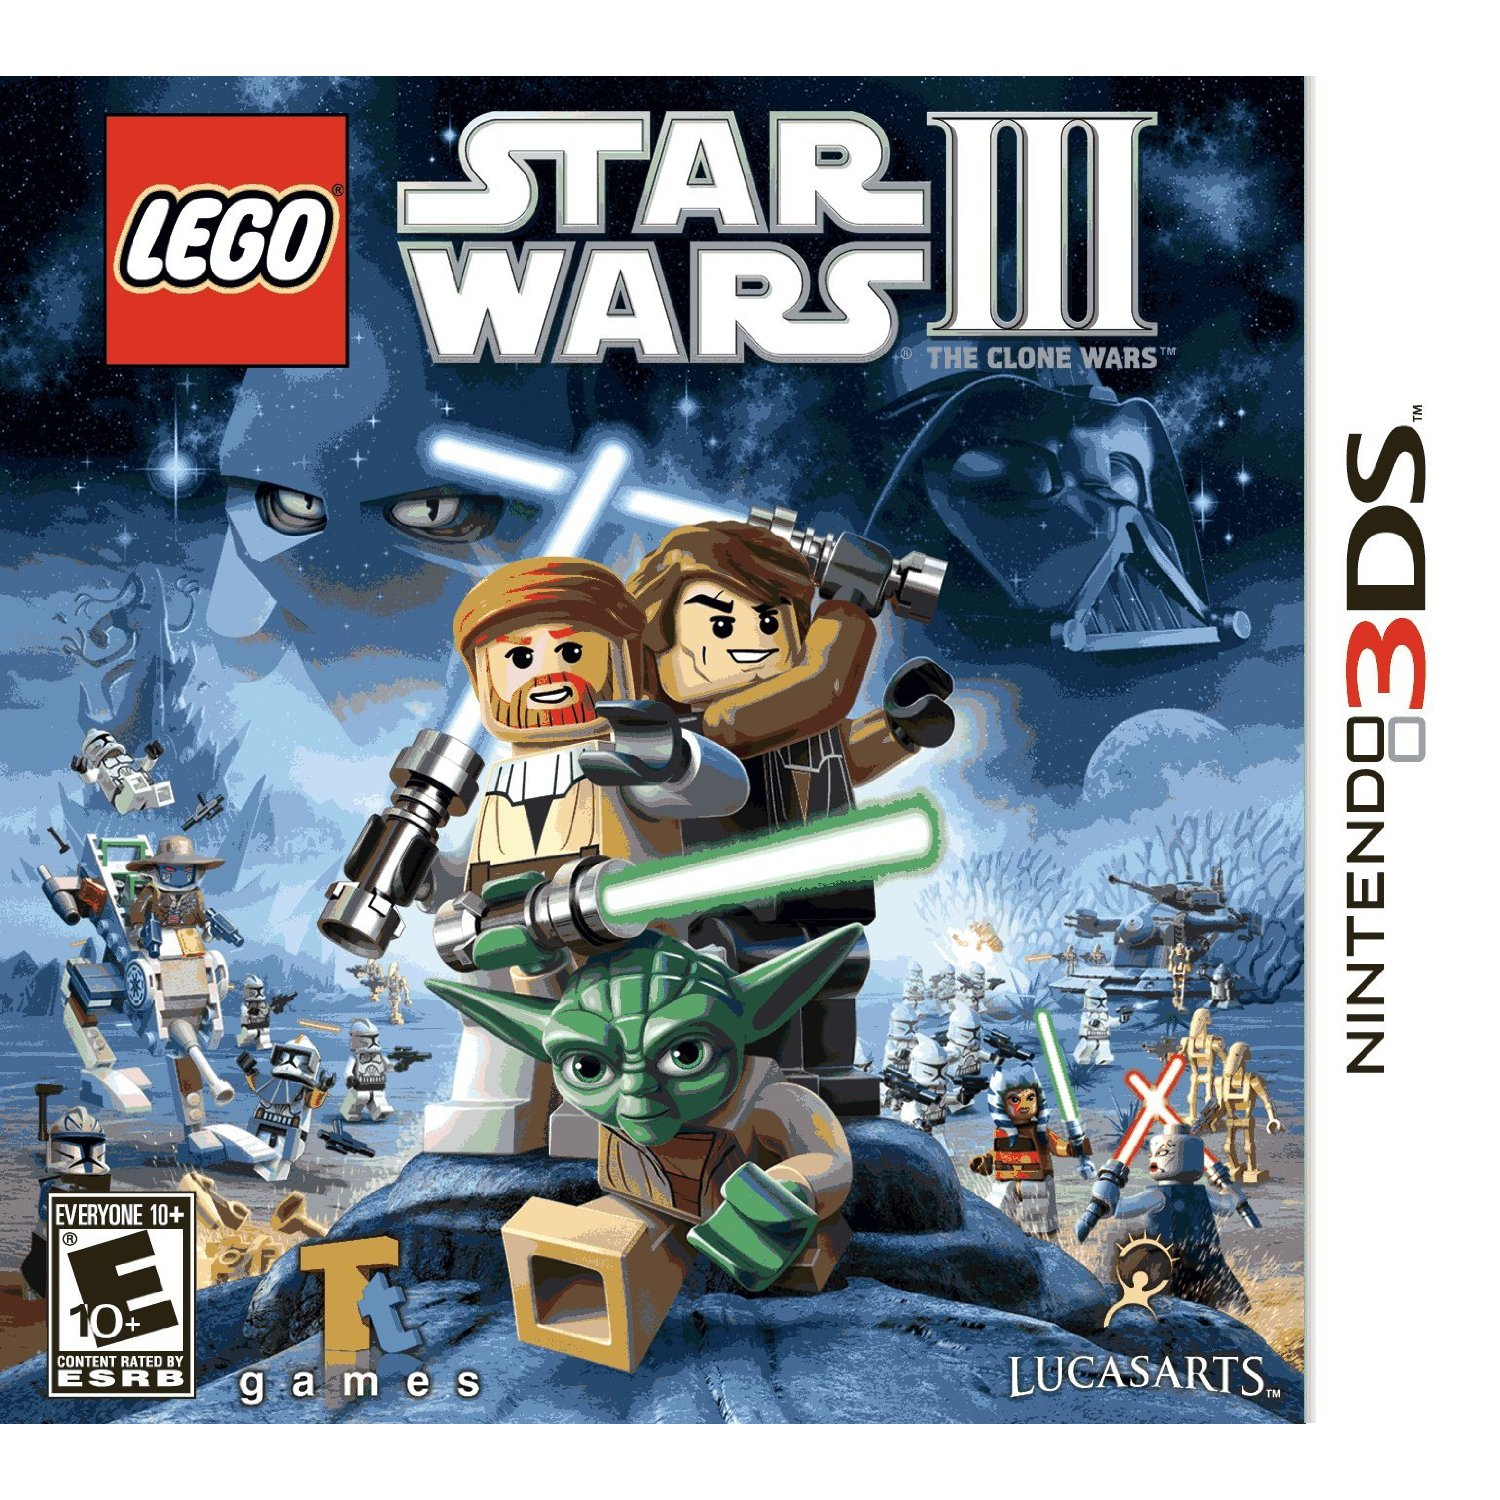 Xbox 360 Lego Star Wars 3 Cheats